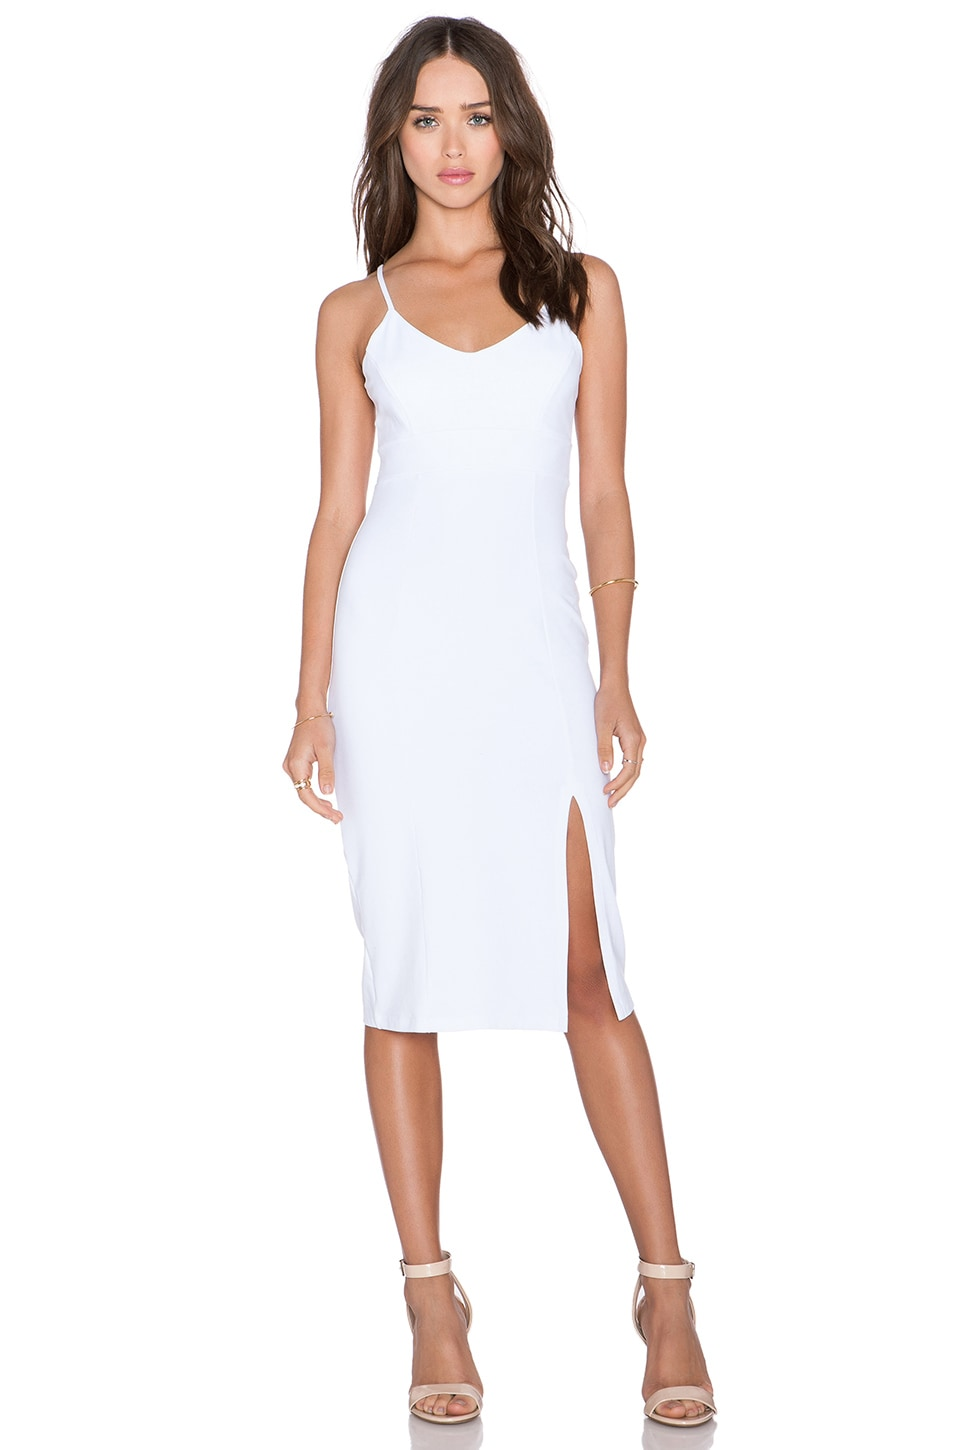 Susana Monaco Nicola Midi Dress in Sugar